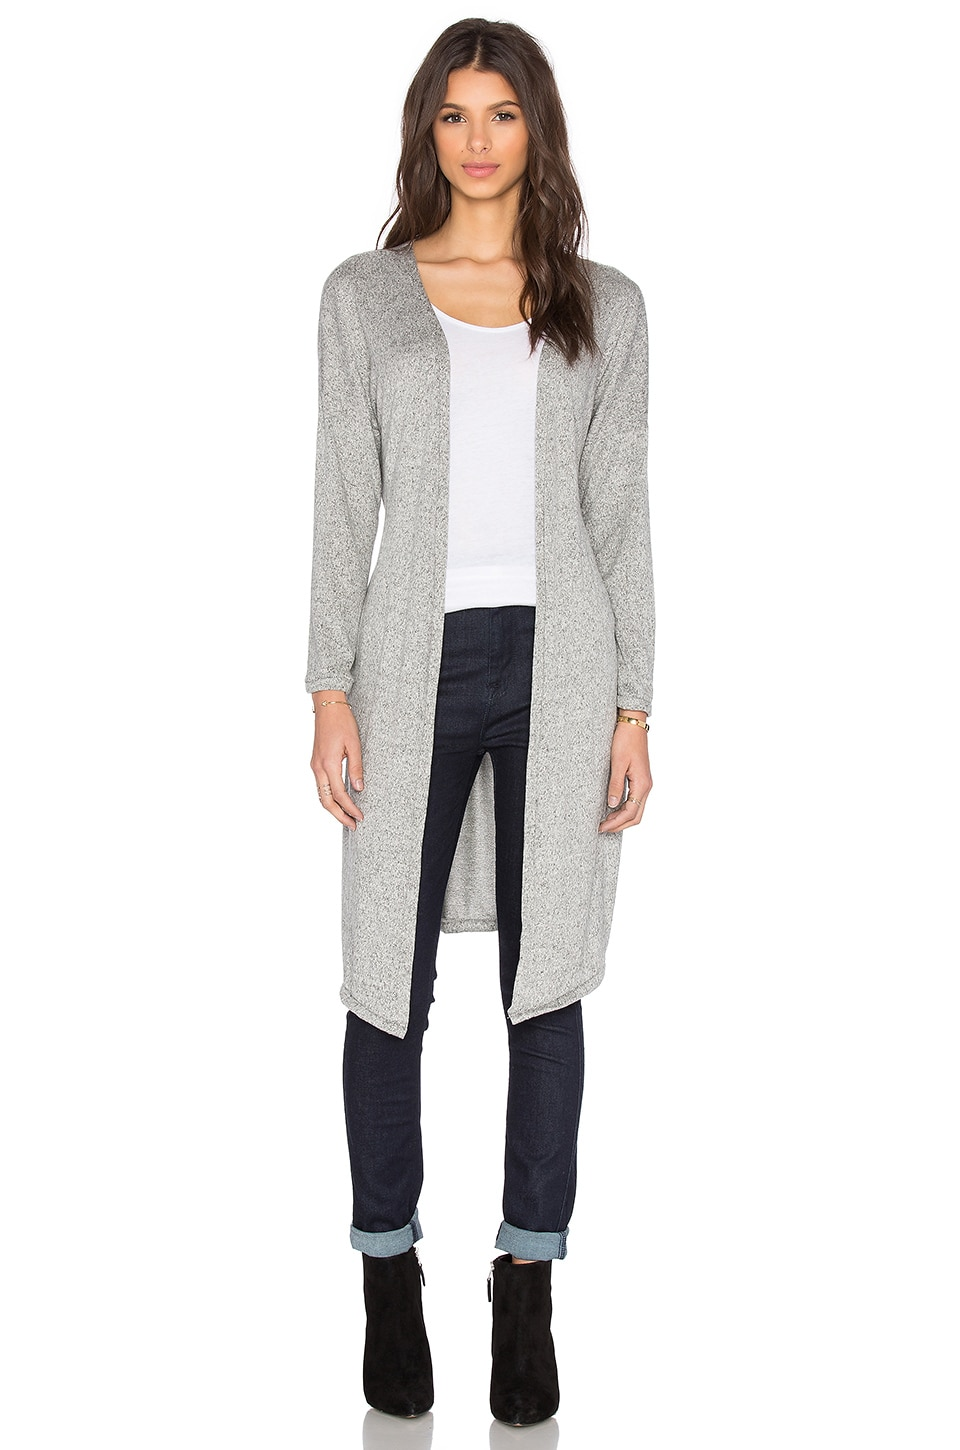 Hye Park and Lune Taylor Long Cardigan in Melange Black